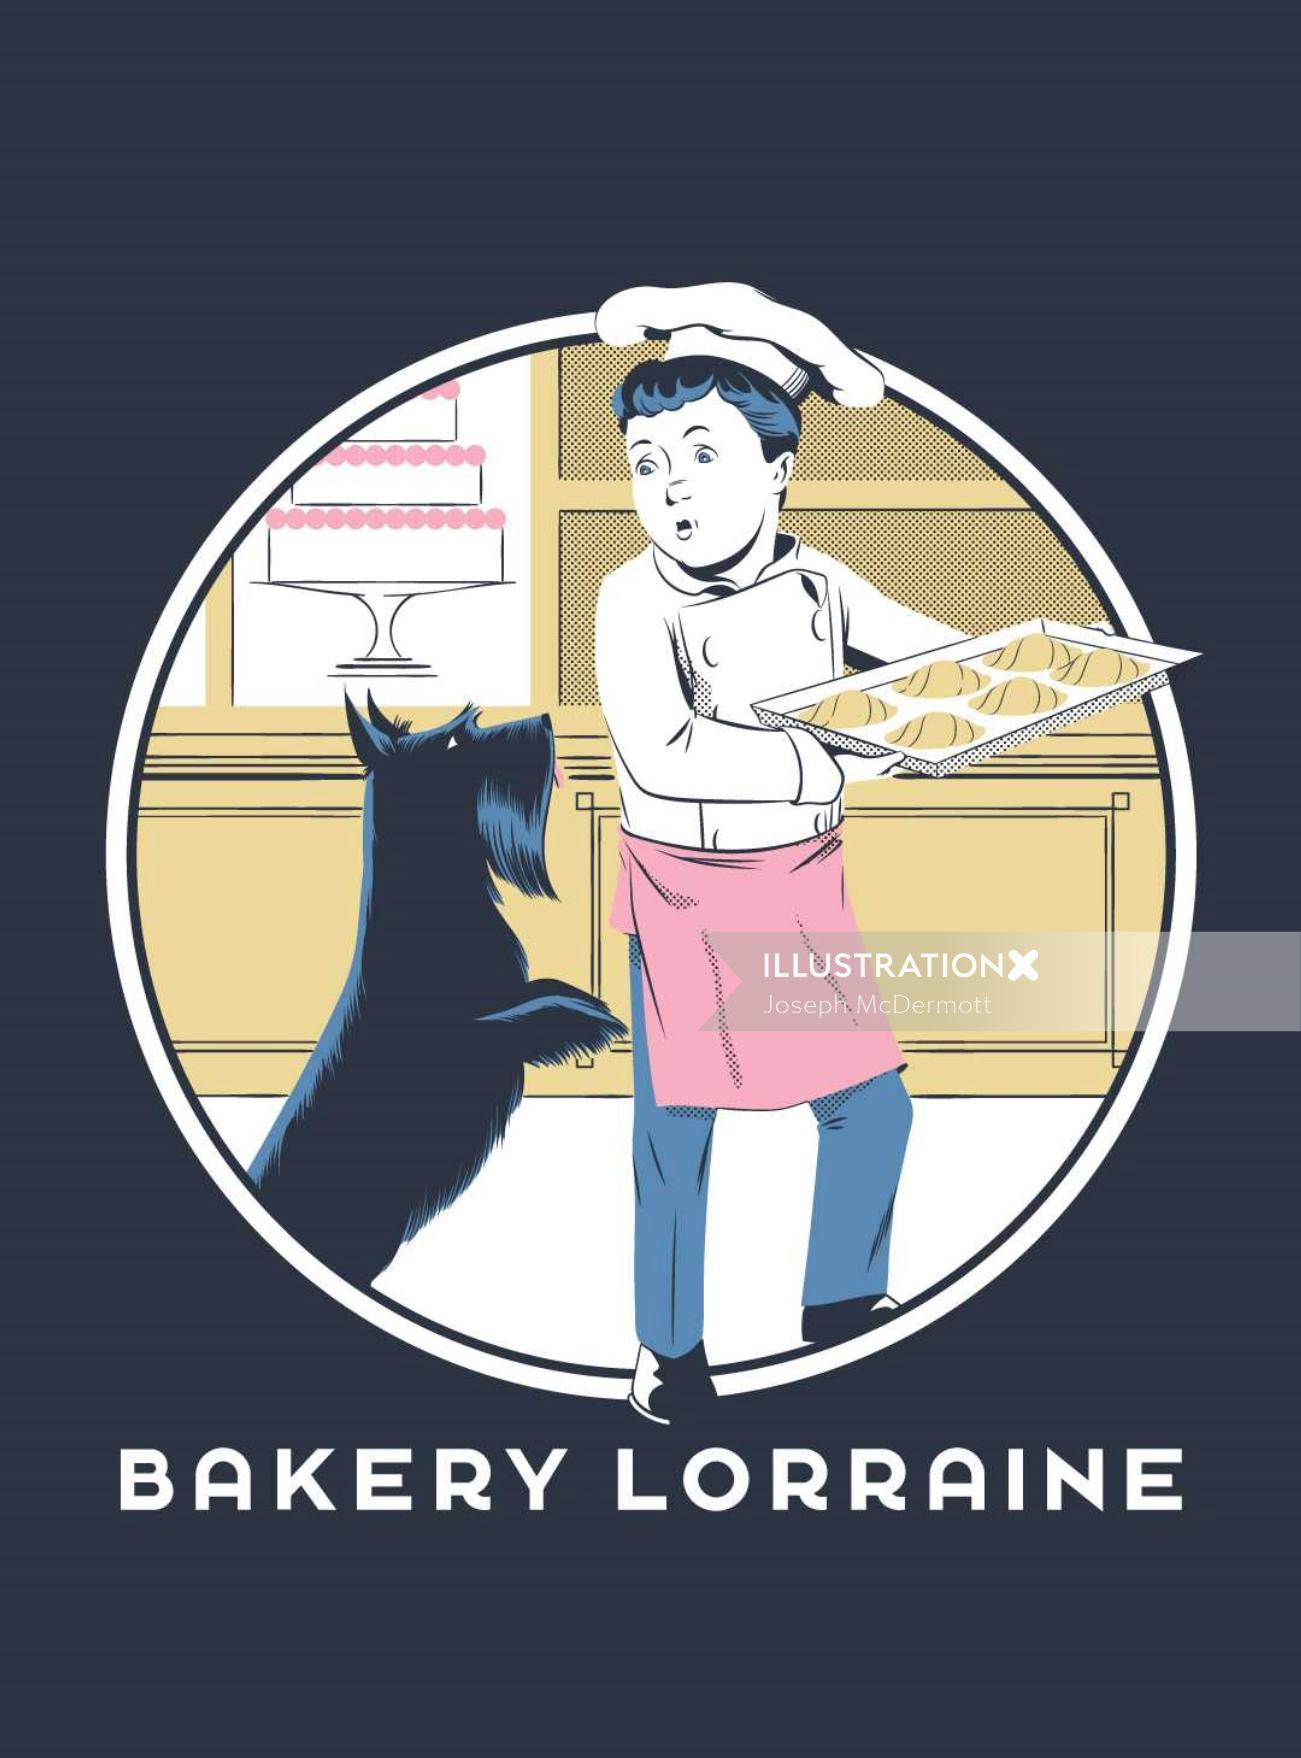 Art of chef and dog in bakery